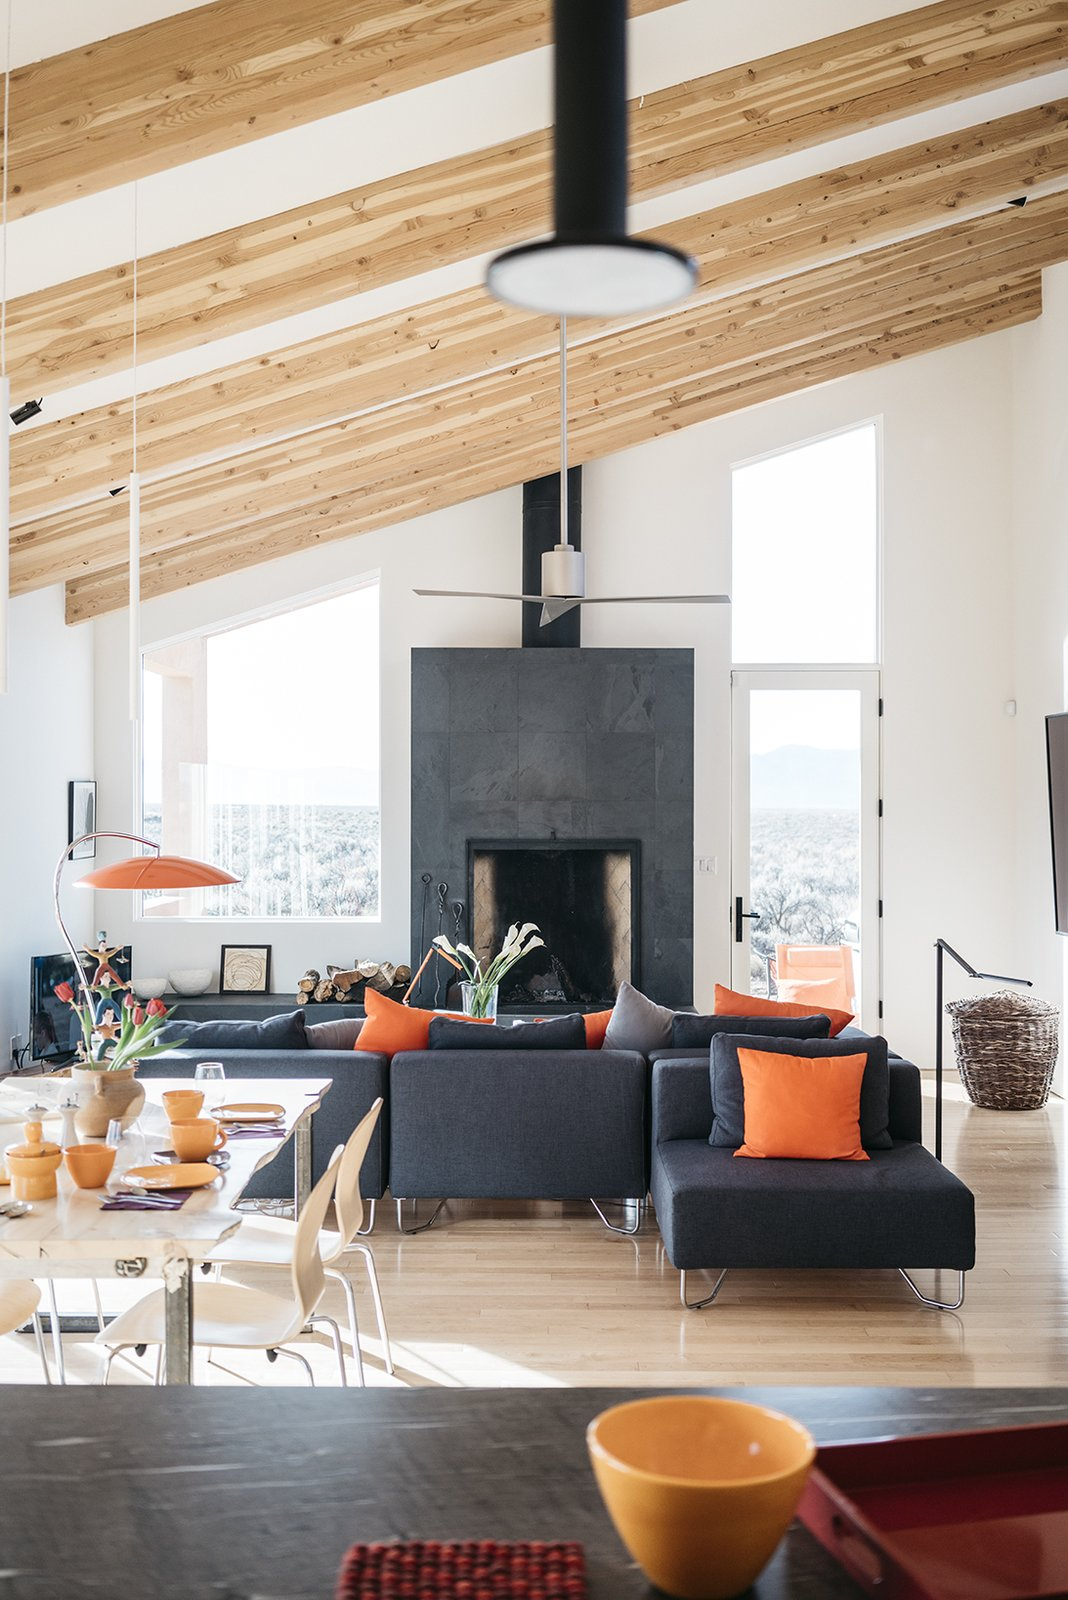 Living Room, Sectional, Table, Chair, Standard Layout Fireplace, and Table Lighting The living/dining room occupies a long, high-ceilinged space. The sectional is from CB2. - Taos, New Mexico Dwell Magazine : July / August 2017  Photo 4 of 11 in A Rookie Designer and Her Builder Father Create an Artist's Sculptural Loft in the Desert